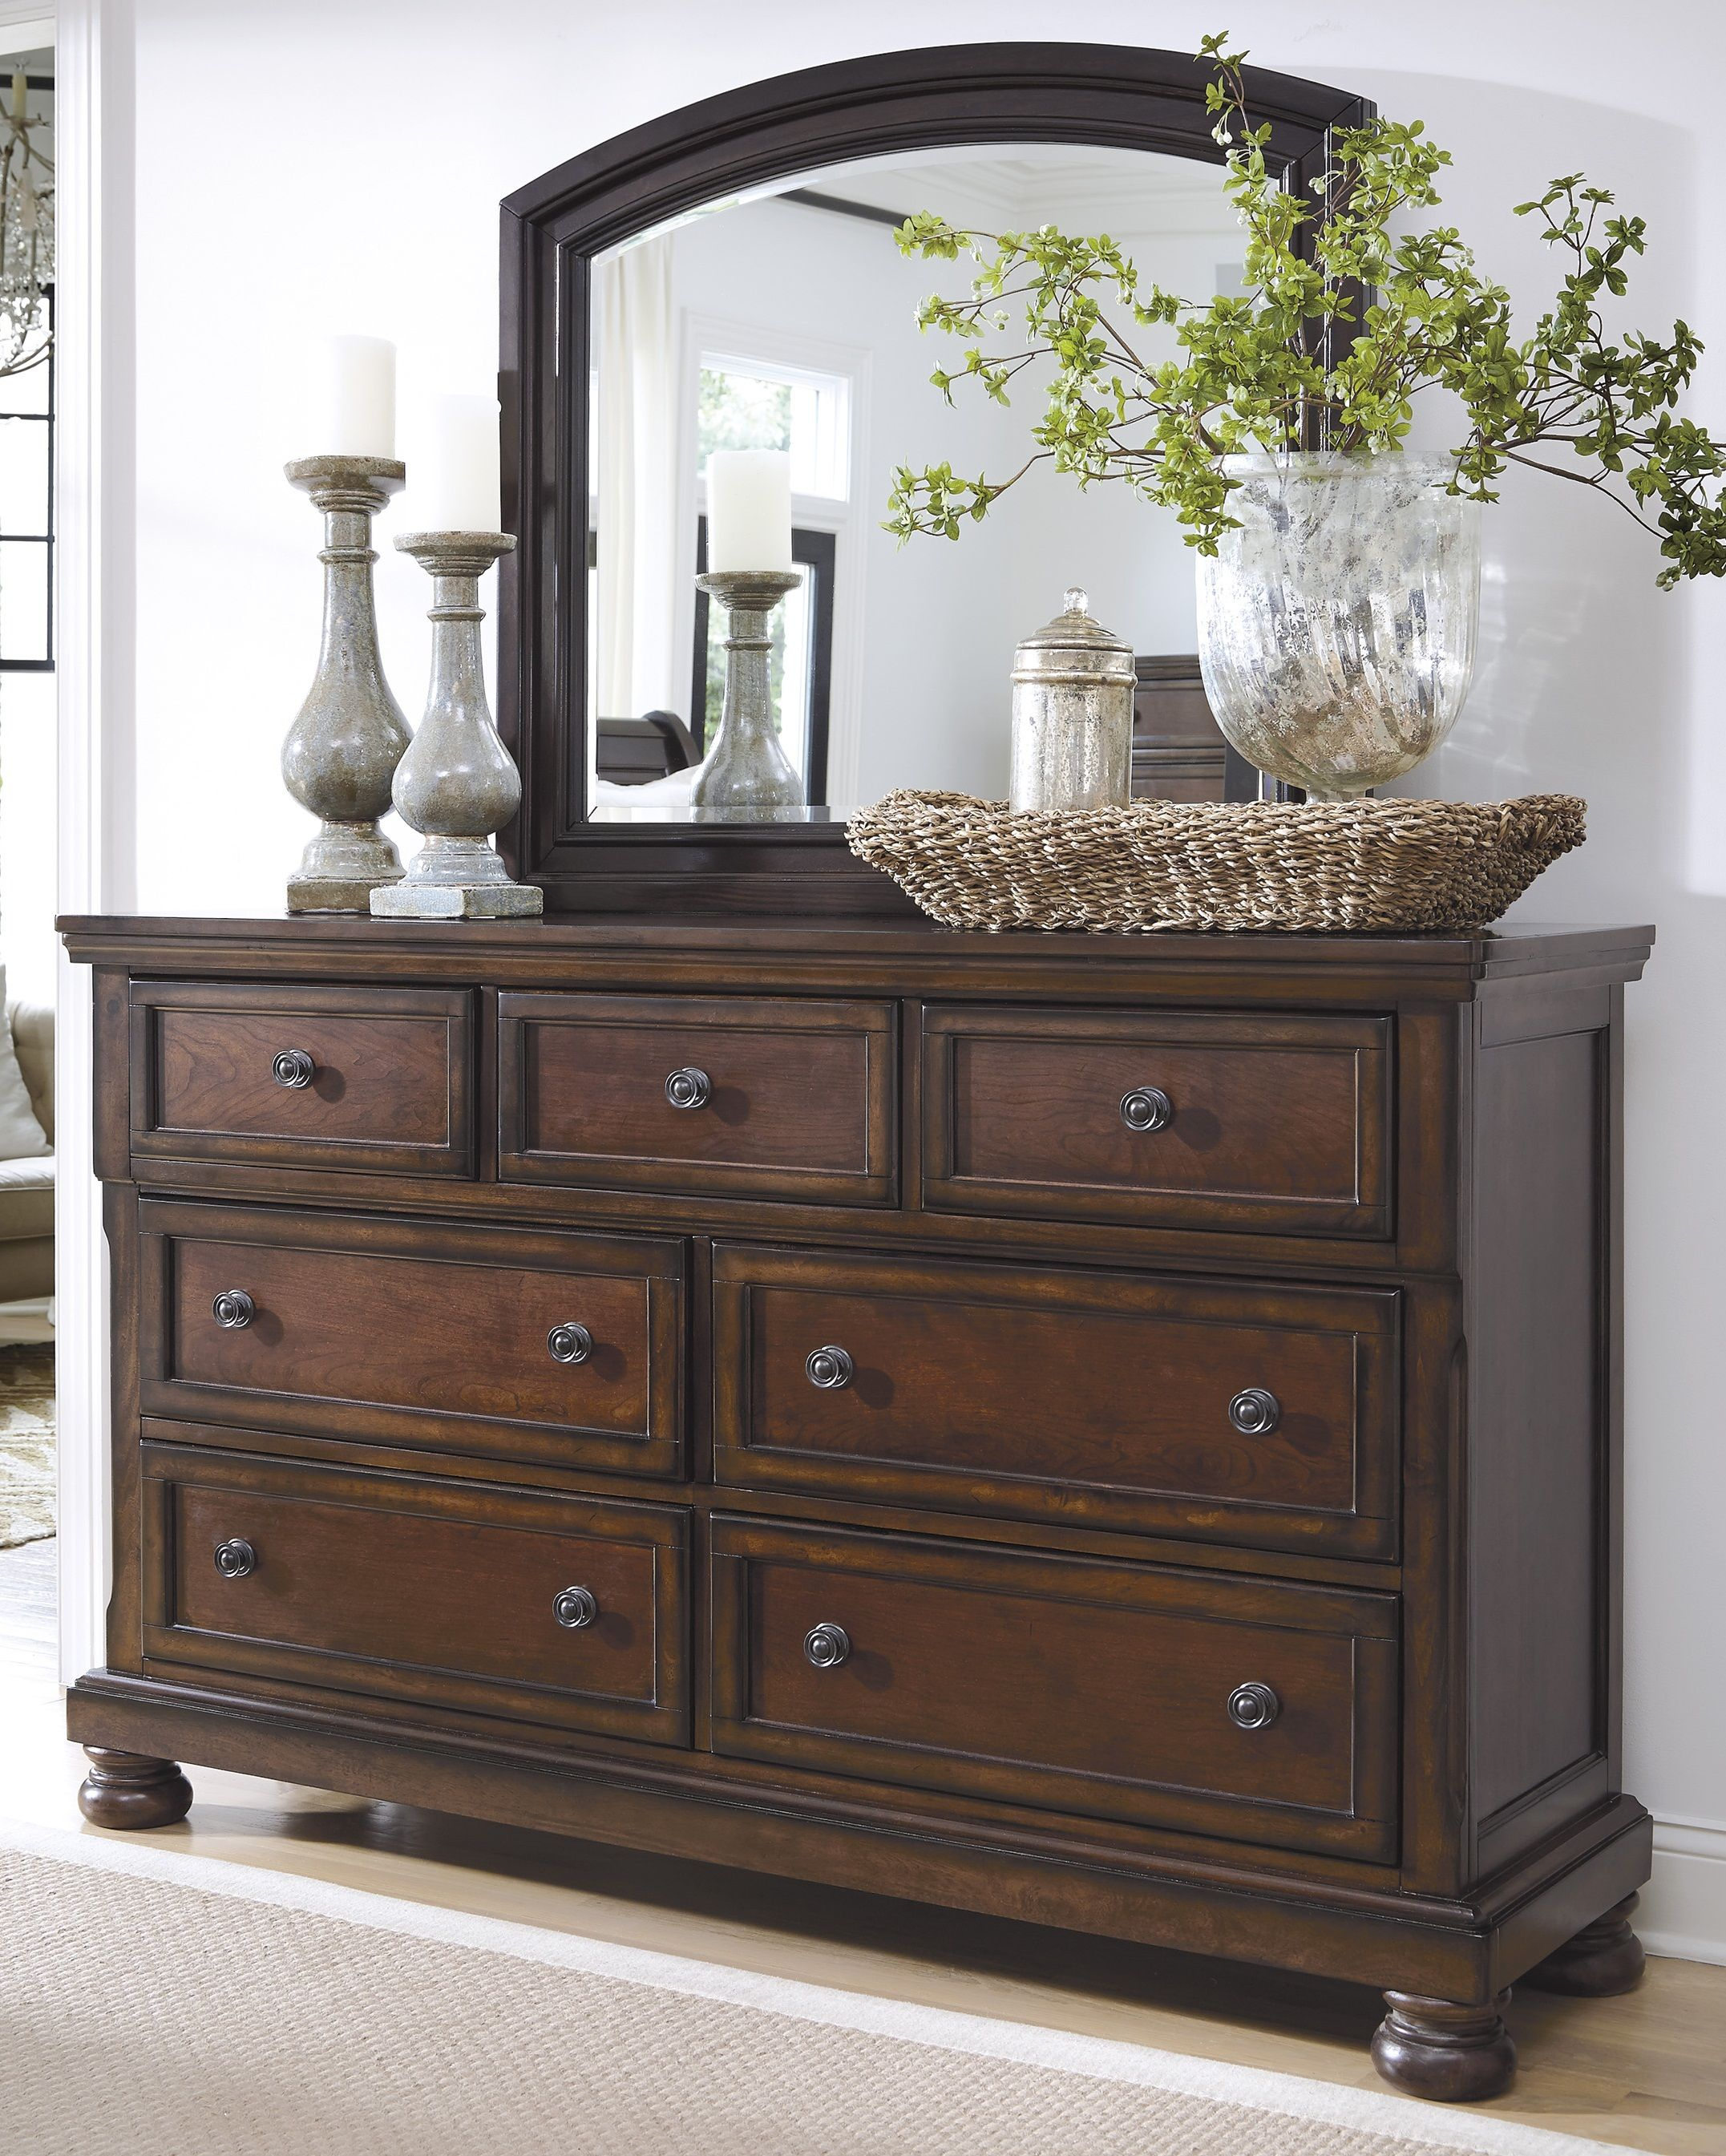 Renaissance  Triple Dresser & Mirror  B6973136 Dressers Cool Ashley Bedroom Dressers Design Ideas